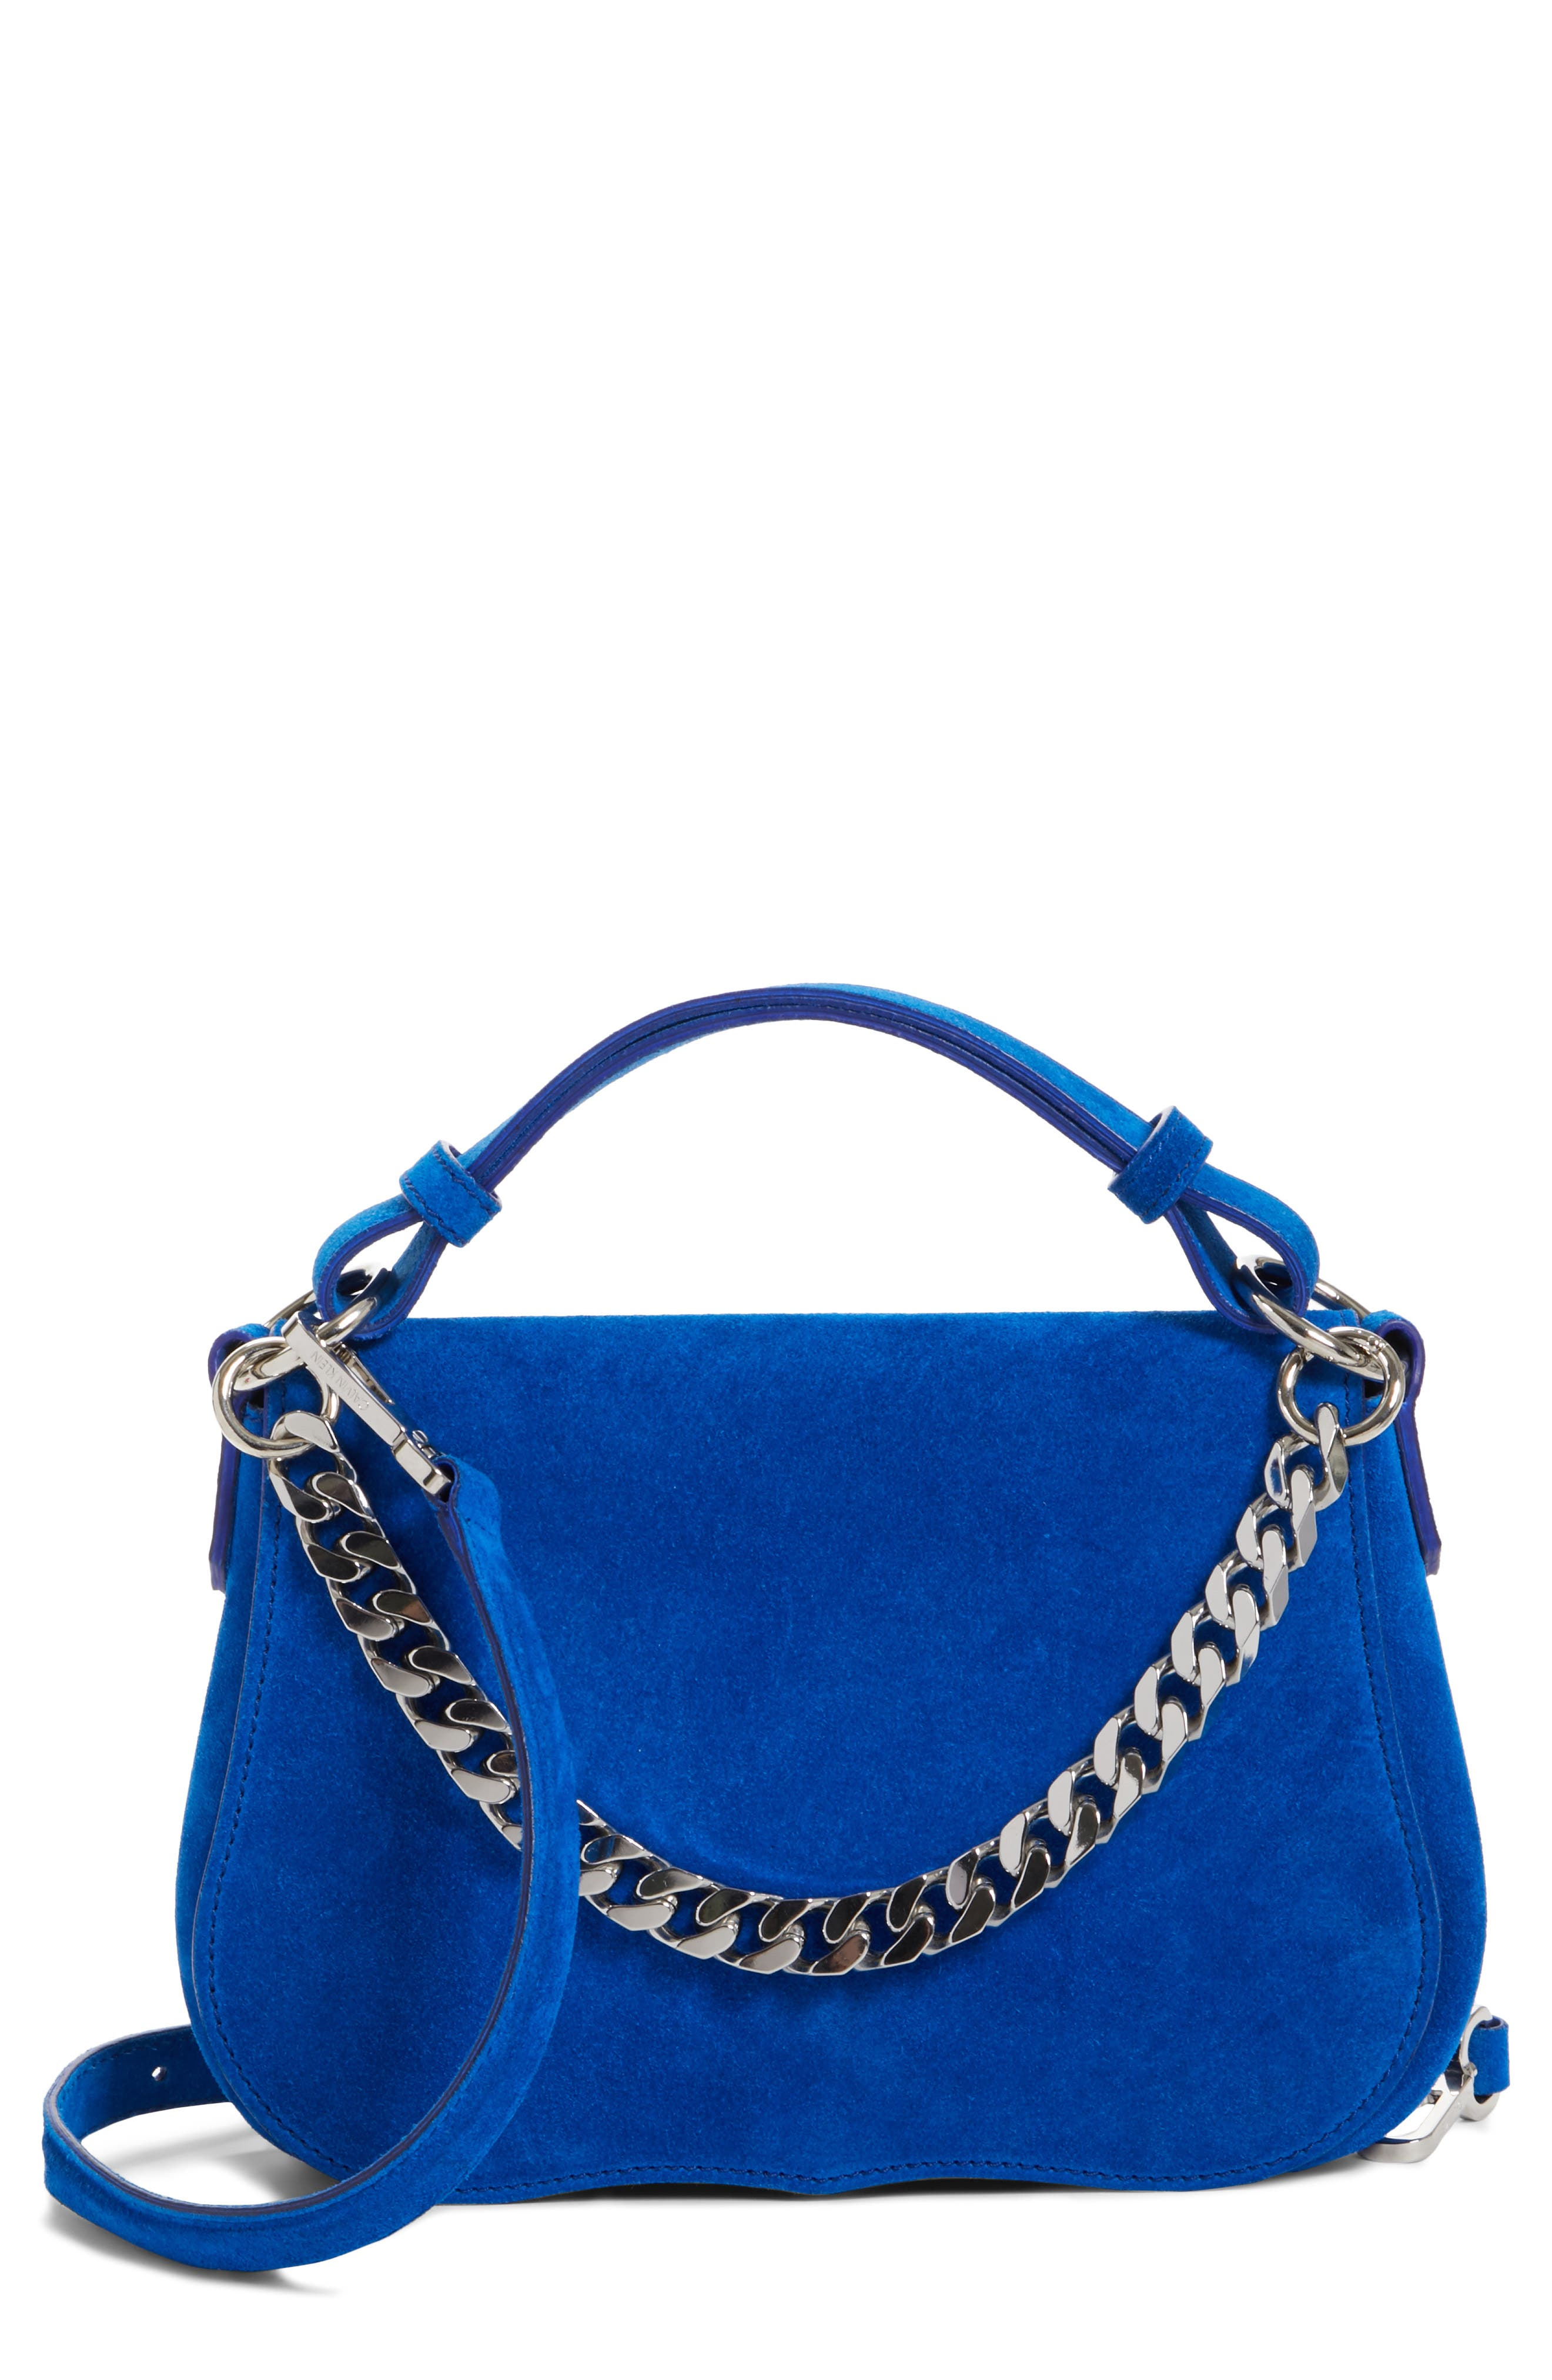 Small Suede Shoulder Bag,                         Main,                         color,